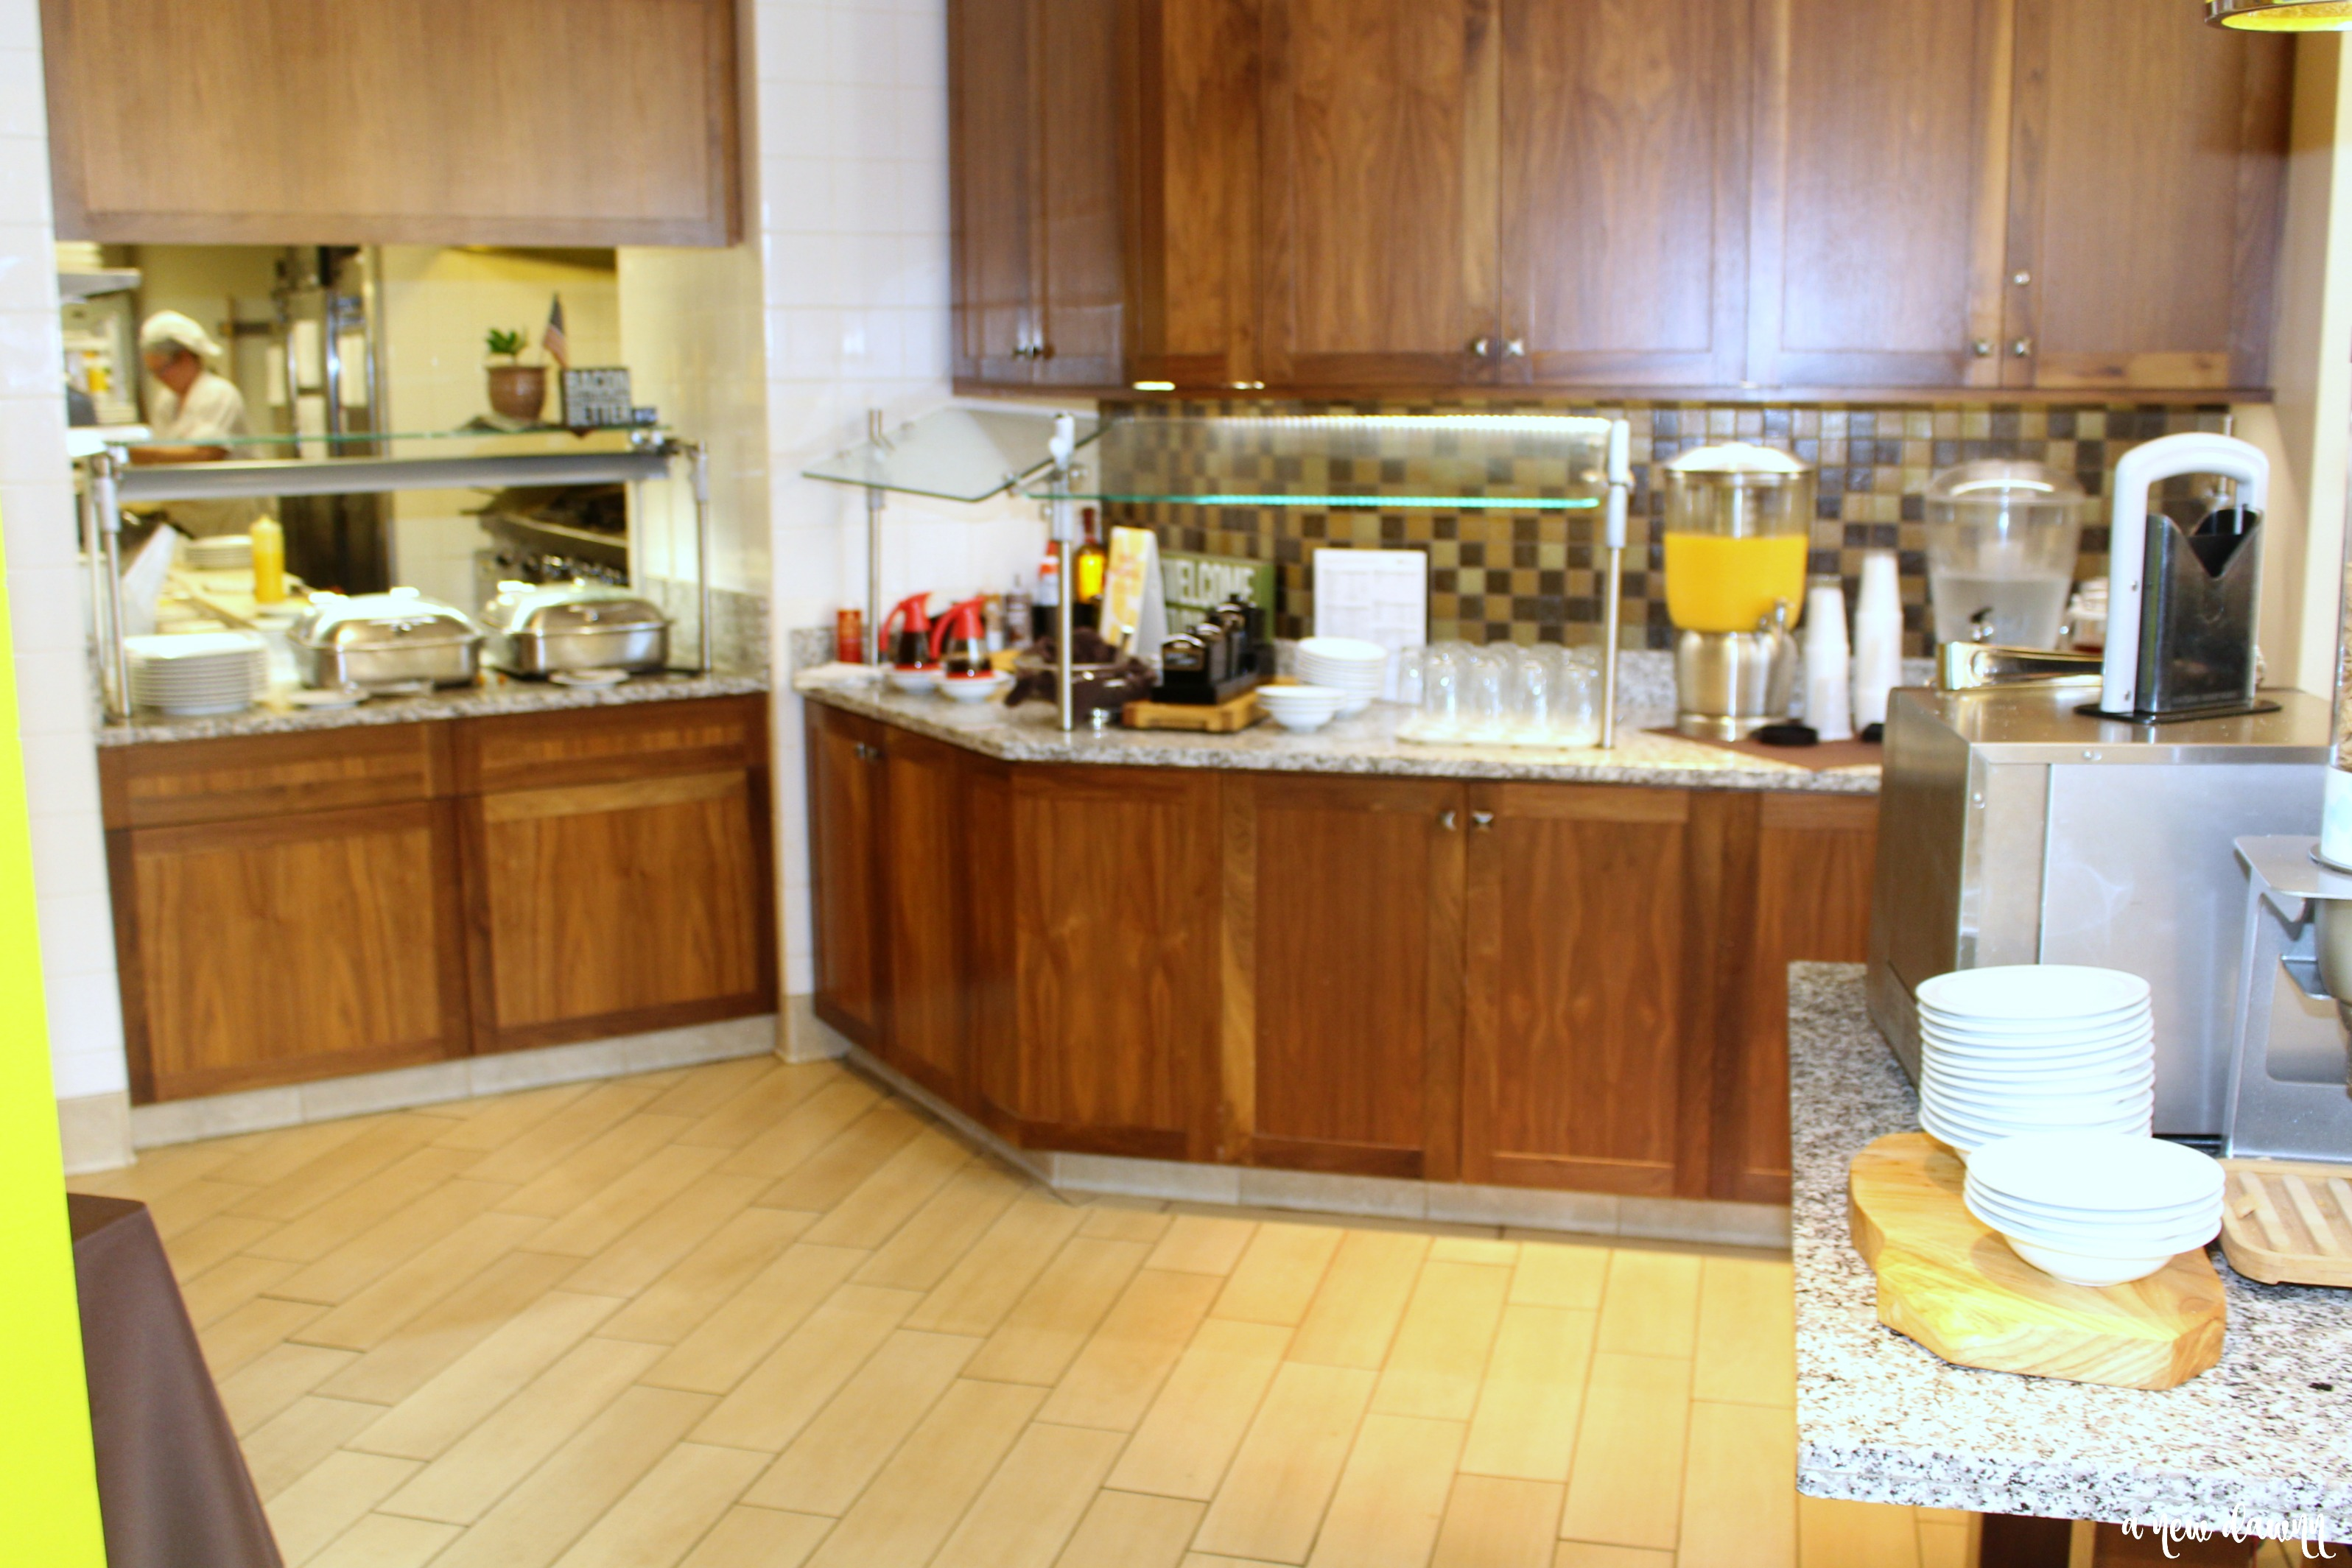 Breakfast buffet area at the Hilton Garden Inn Hershey